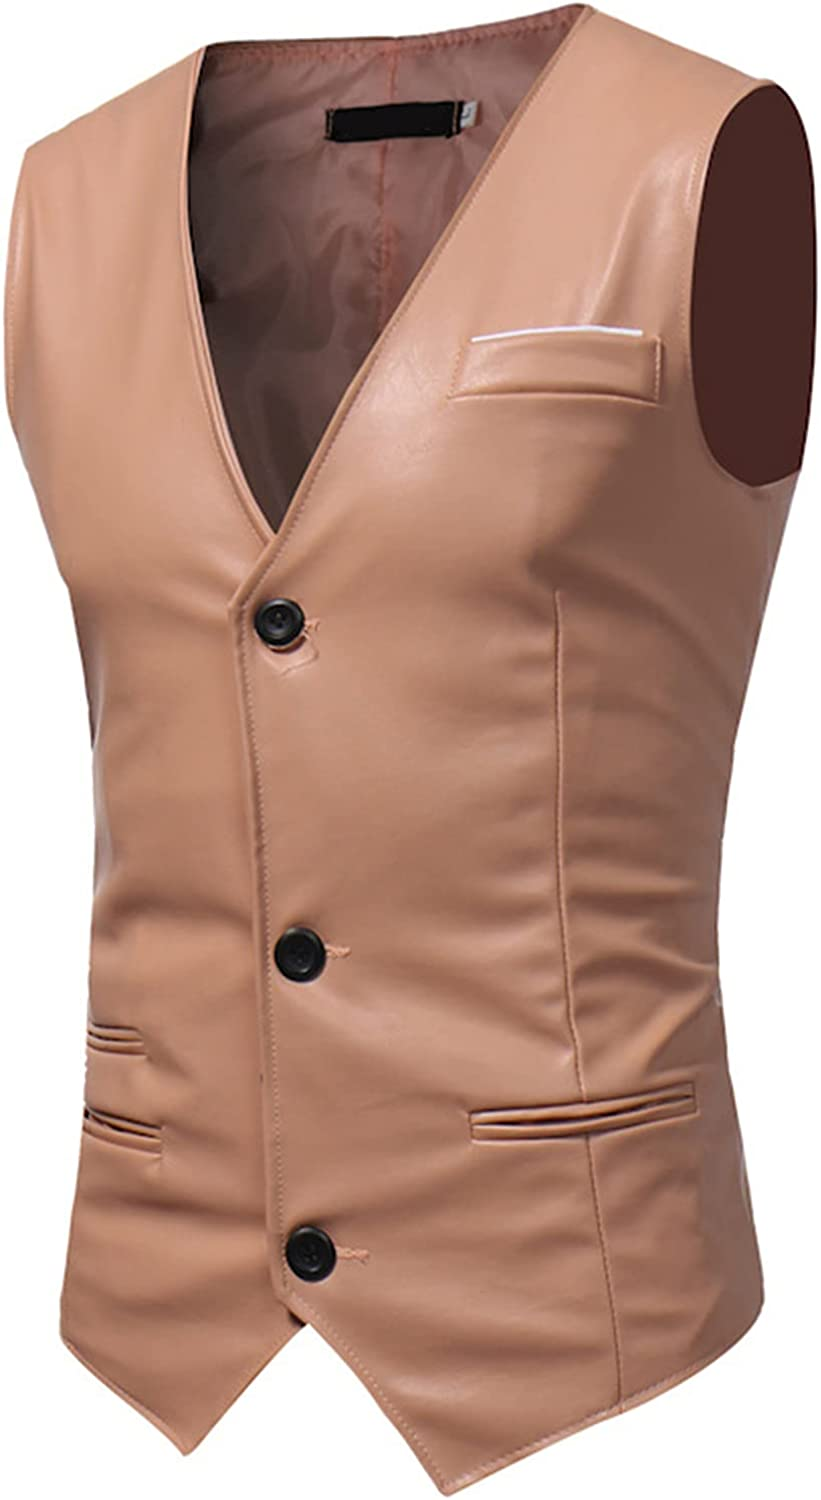 Mens Waistcoat,Business Gentleman Solid Color PU Leather Slim Waistcoats,Fashion All-Match Leather Vest